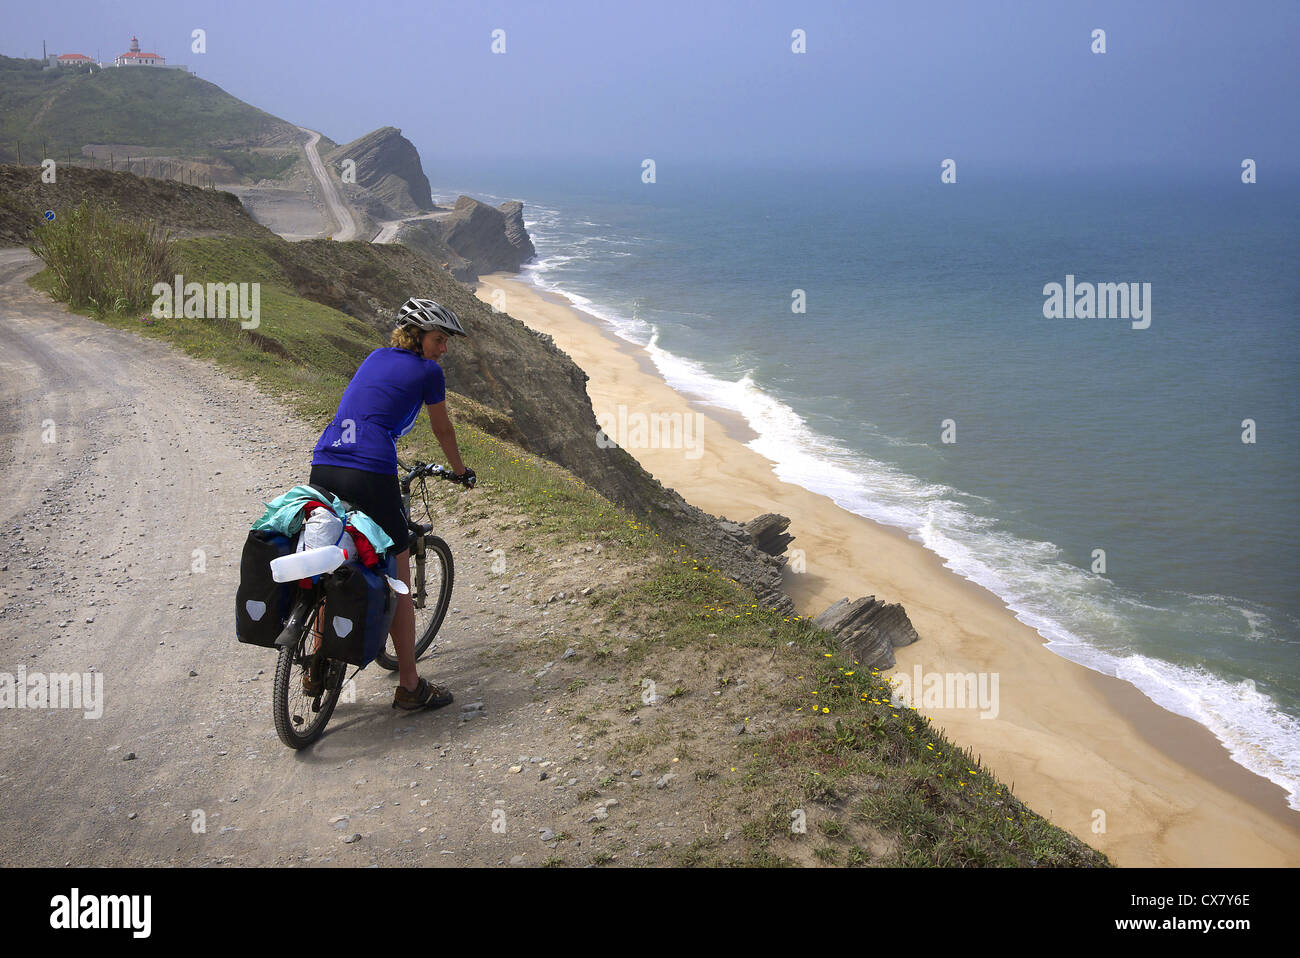 A cycle tourist takes in the view near Quiaios in Portugal. - Stock Image